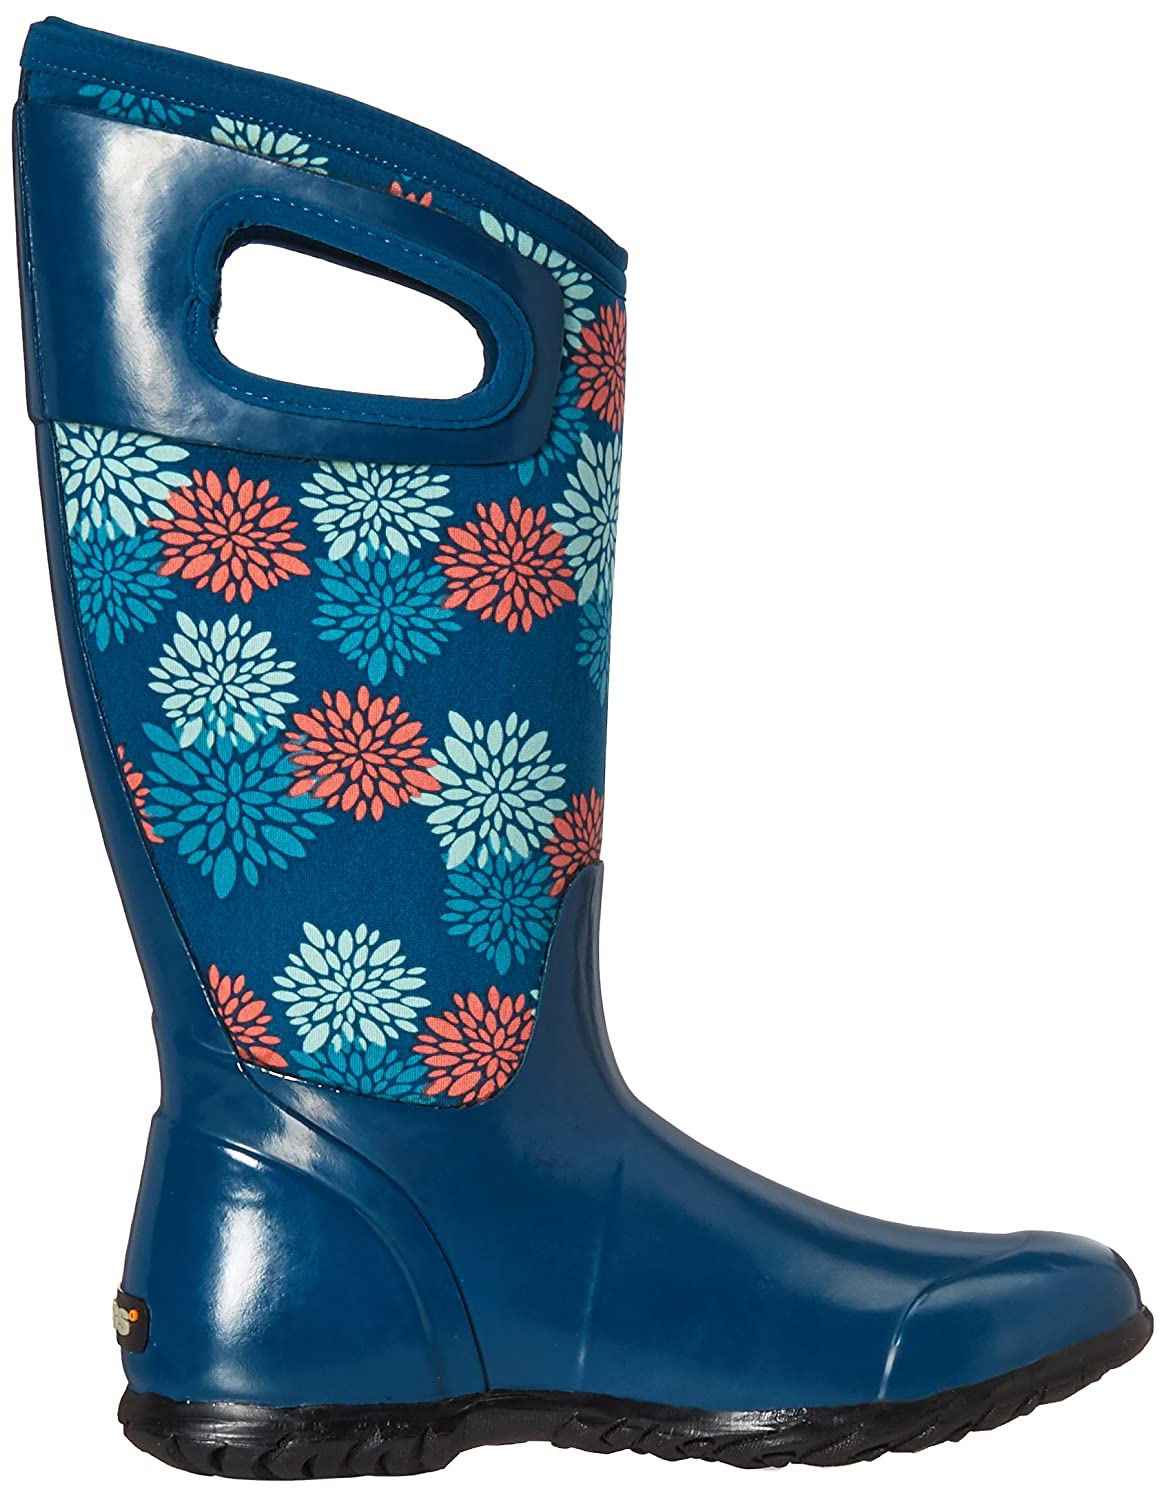 Bogs Ladies North Hampton Pompons Blau Insulated WARM WARM Insulated Wellington Boot 72040-UK 6 (EU 39) - 6155ab